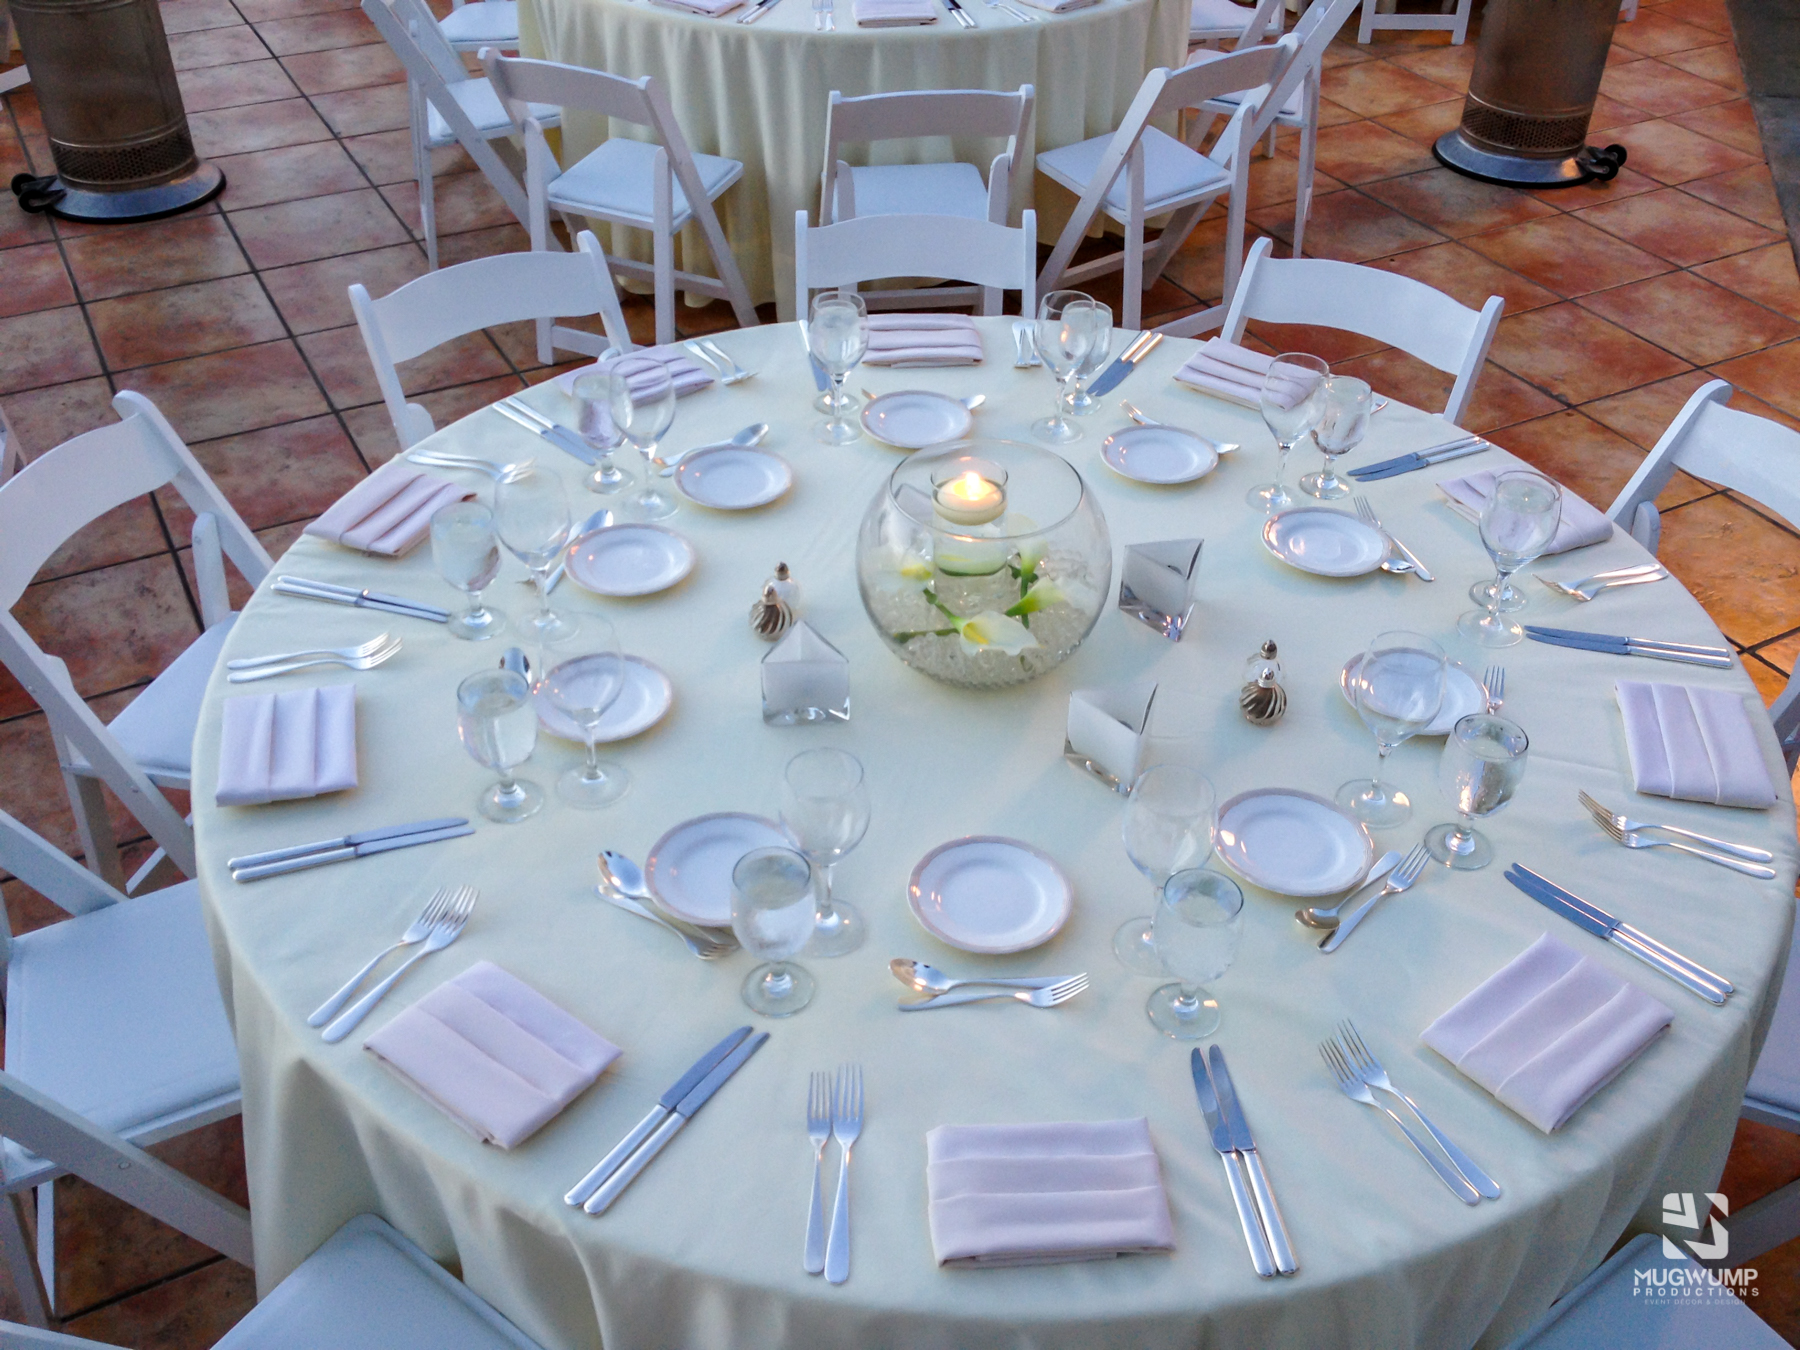 Chair and table rental with decor rentals